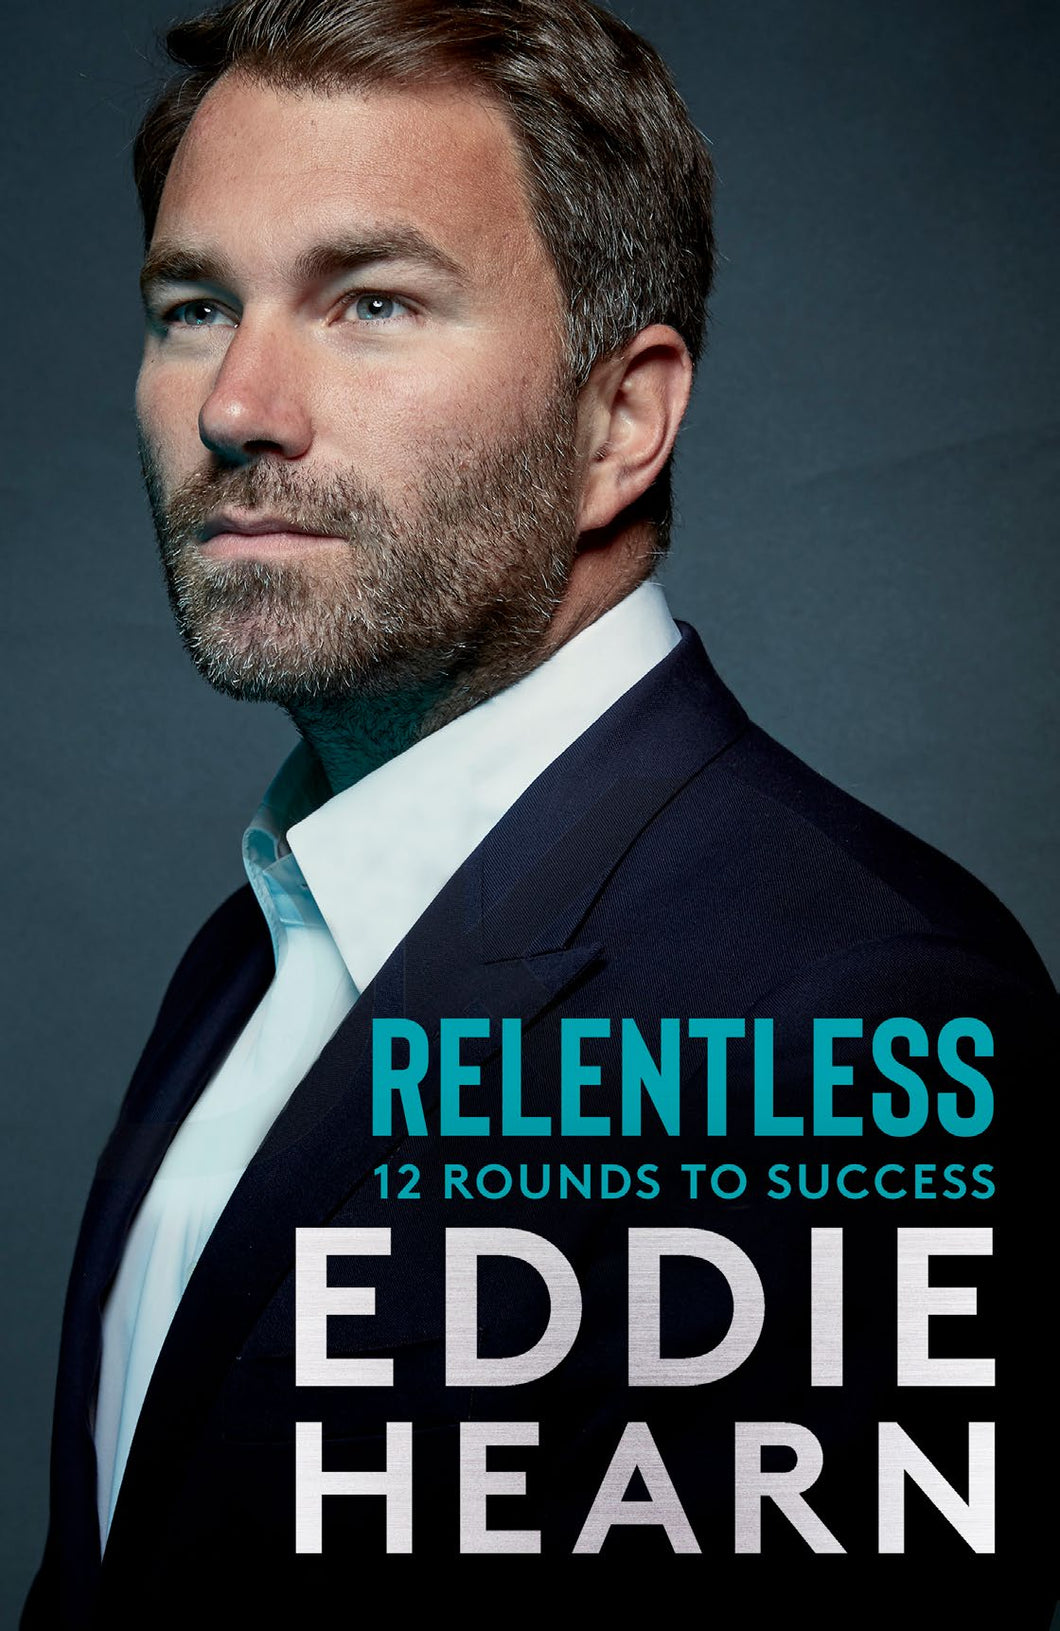 Relentless: 12 Rounds to Success (Hardback) - Eddie Hearn - SIGNED